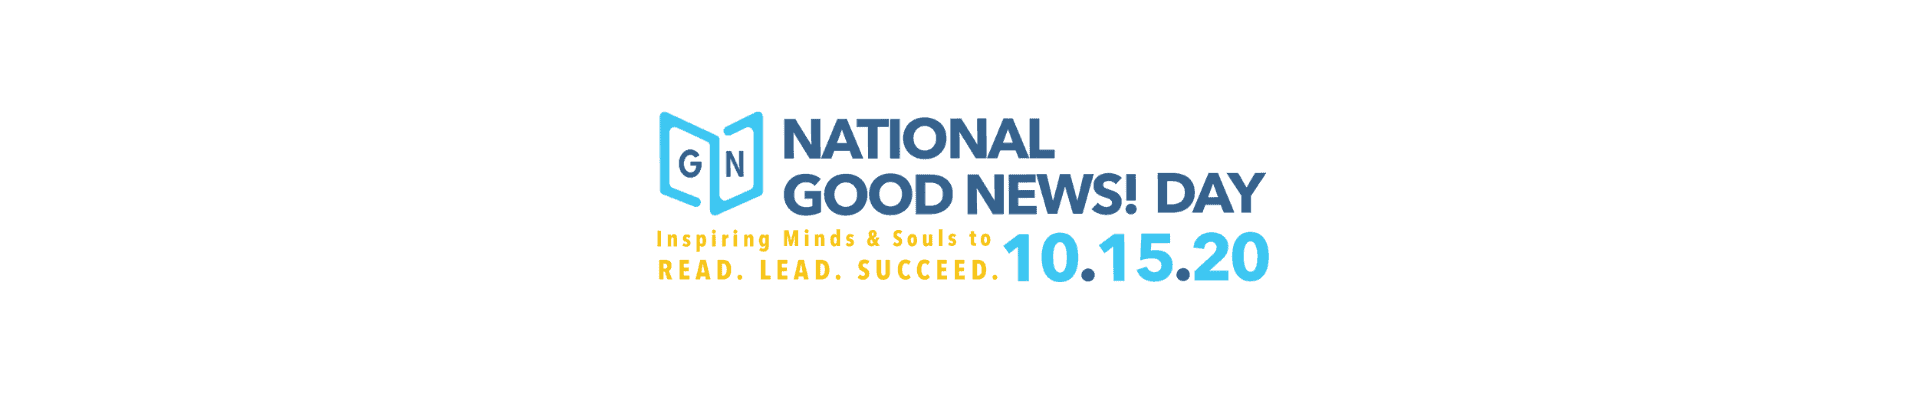 National Good News Day